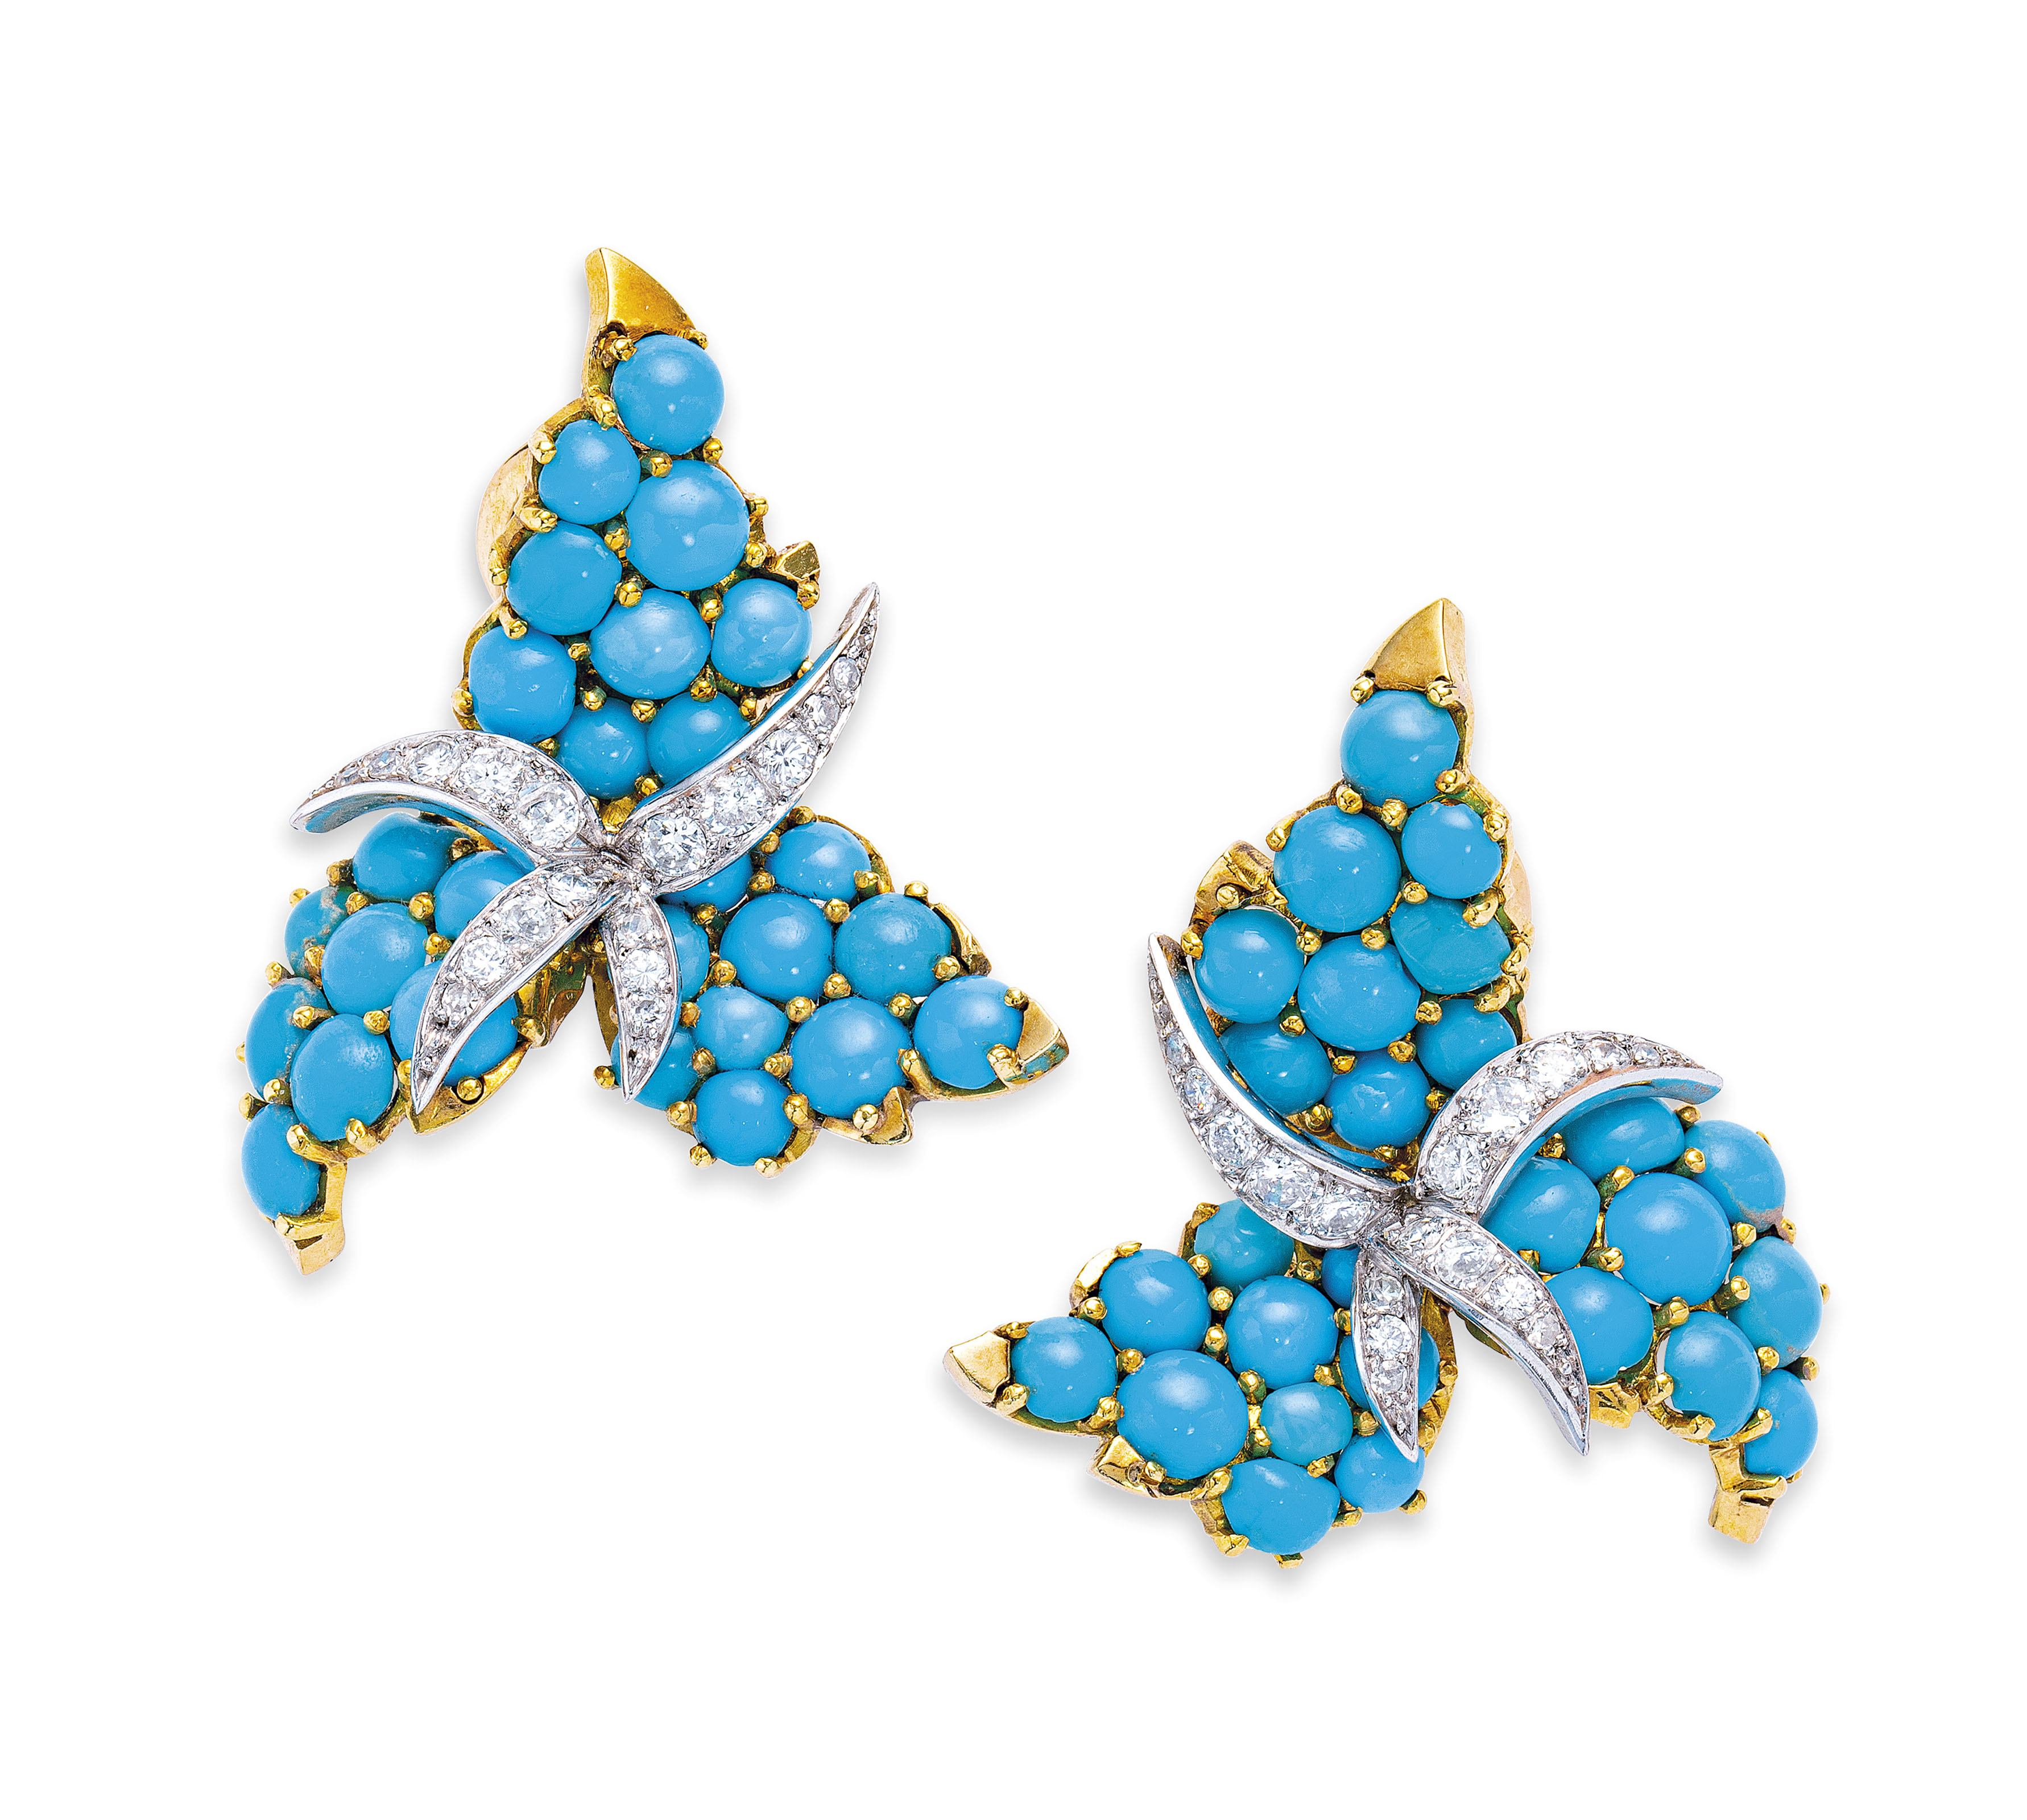 TURQUOISE AND DIAMOND BROOCH AND EARRING SET, STERLÉ FOR CHAUMET